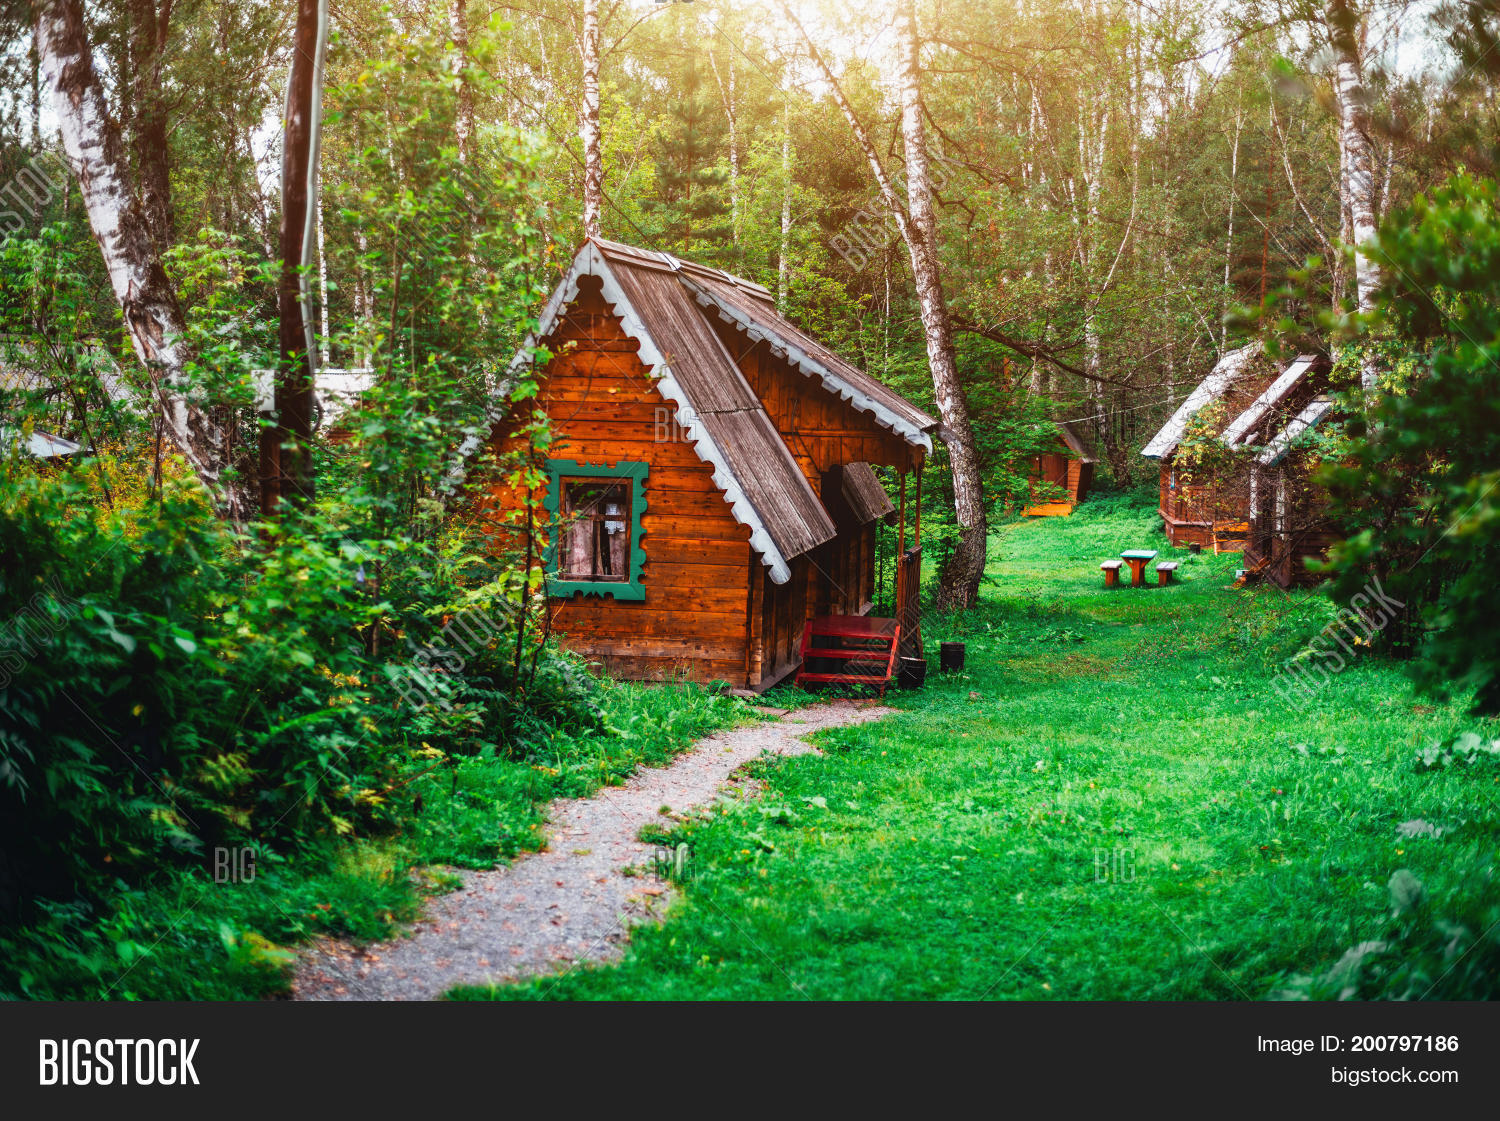 Small Wooden House Image Photo Free Trial Bigstock